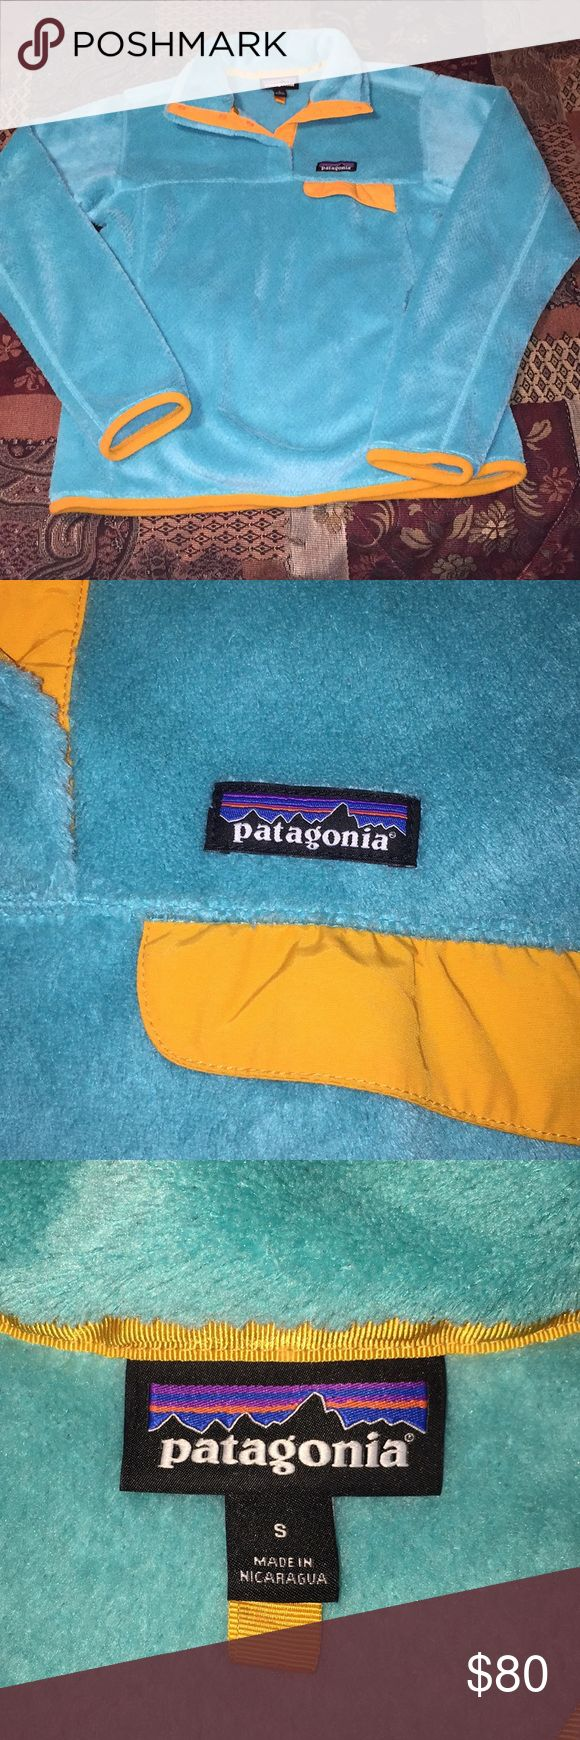 Patagonia Fleece Pullover💚 The color is NOT blue💕 Its more like a green, turquoise kinda color💚 In good condition 💚 Patagonia Sweaters